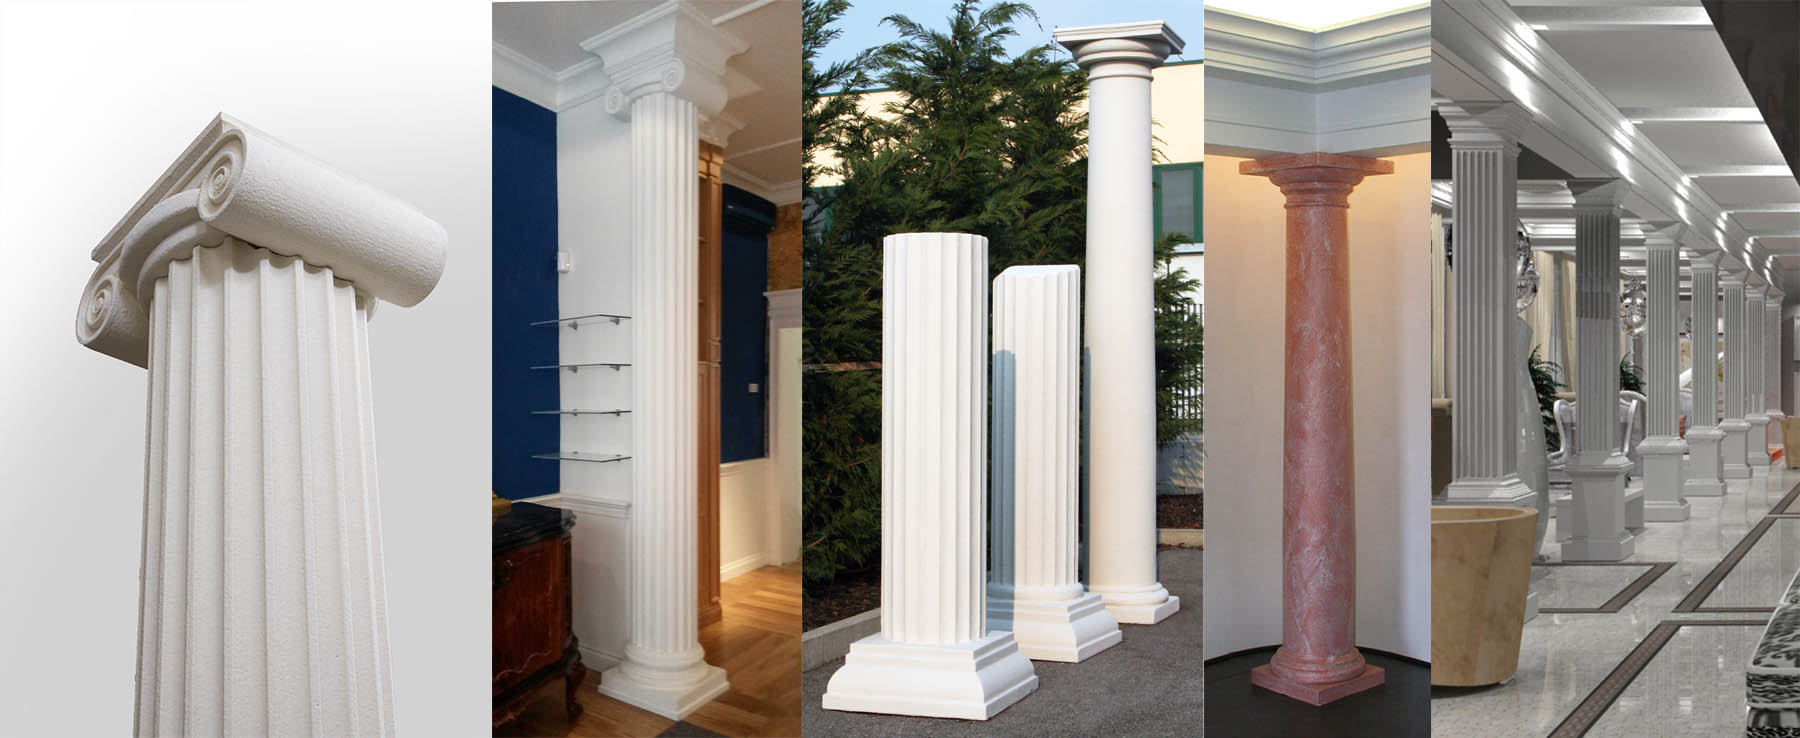 Colonne in polistirolo e lesene decorative eleni decor for Placche decorative per interni